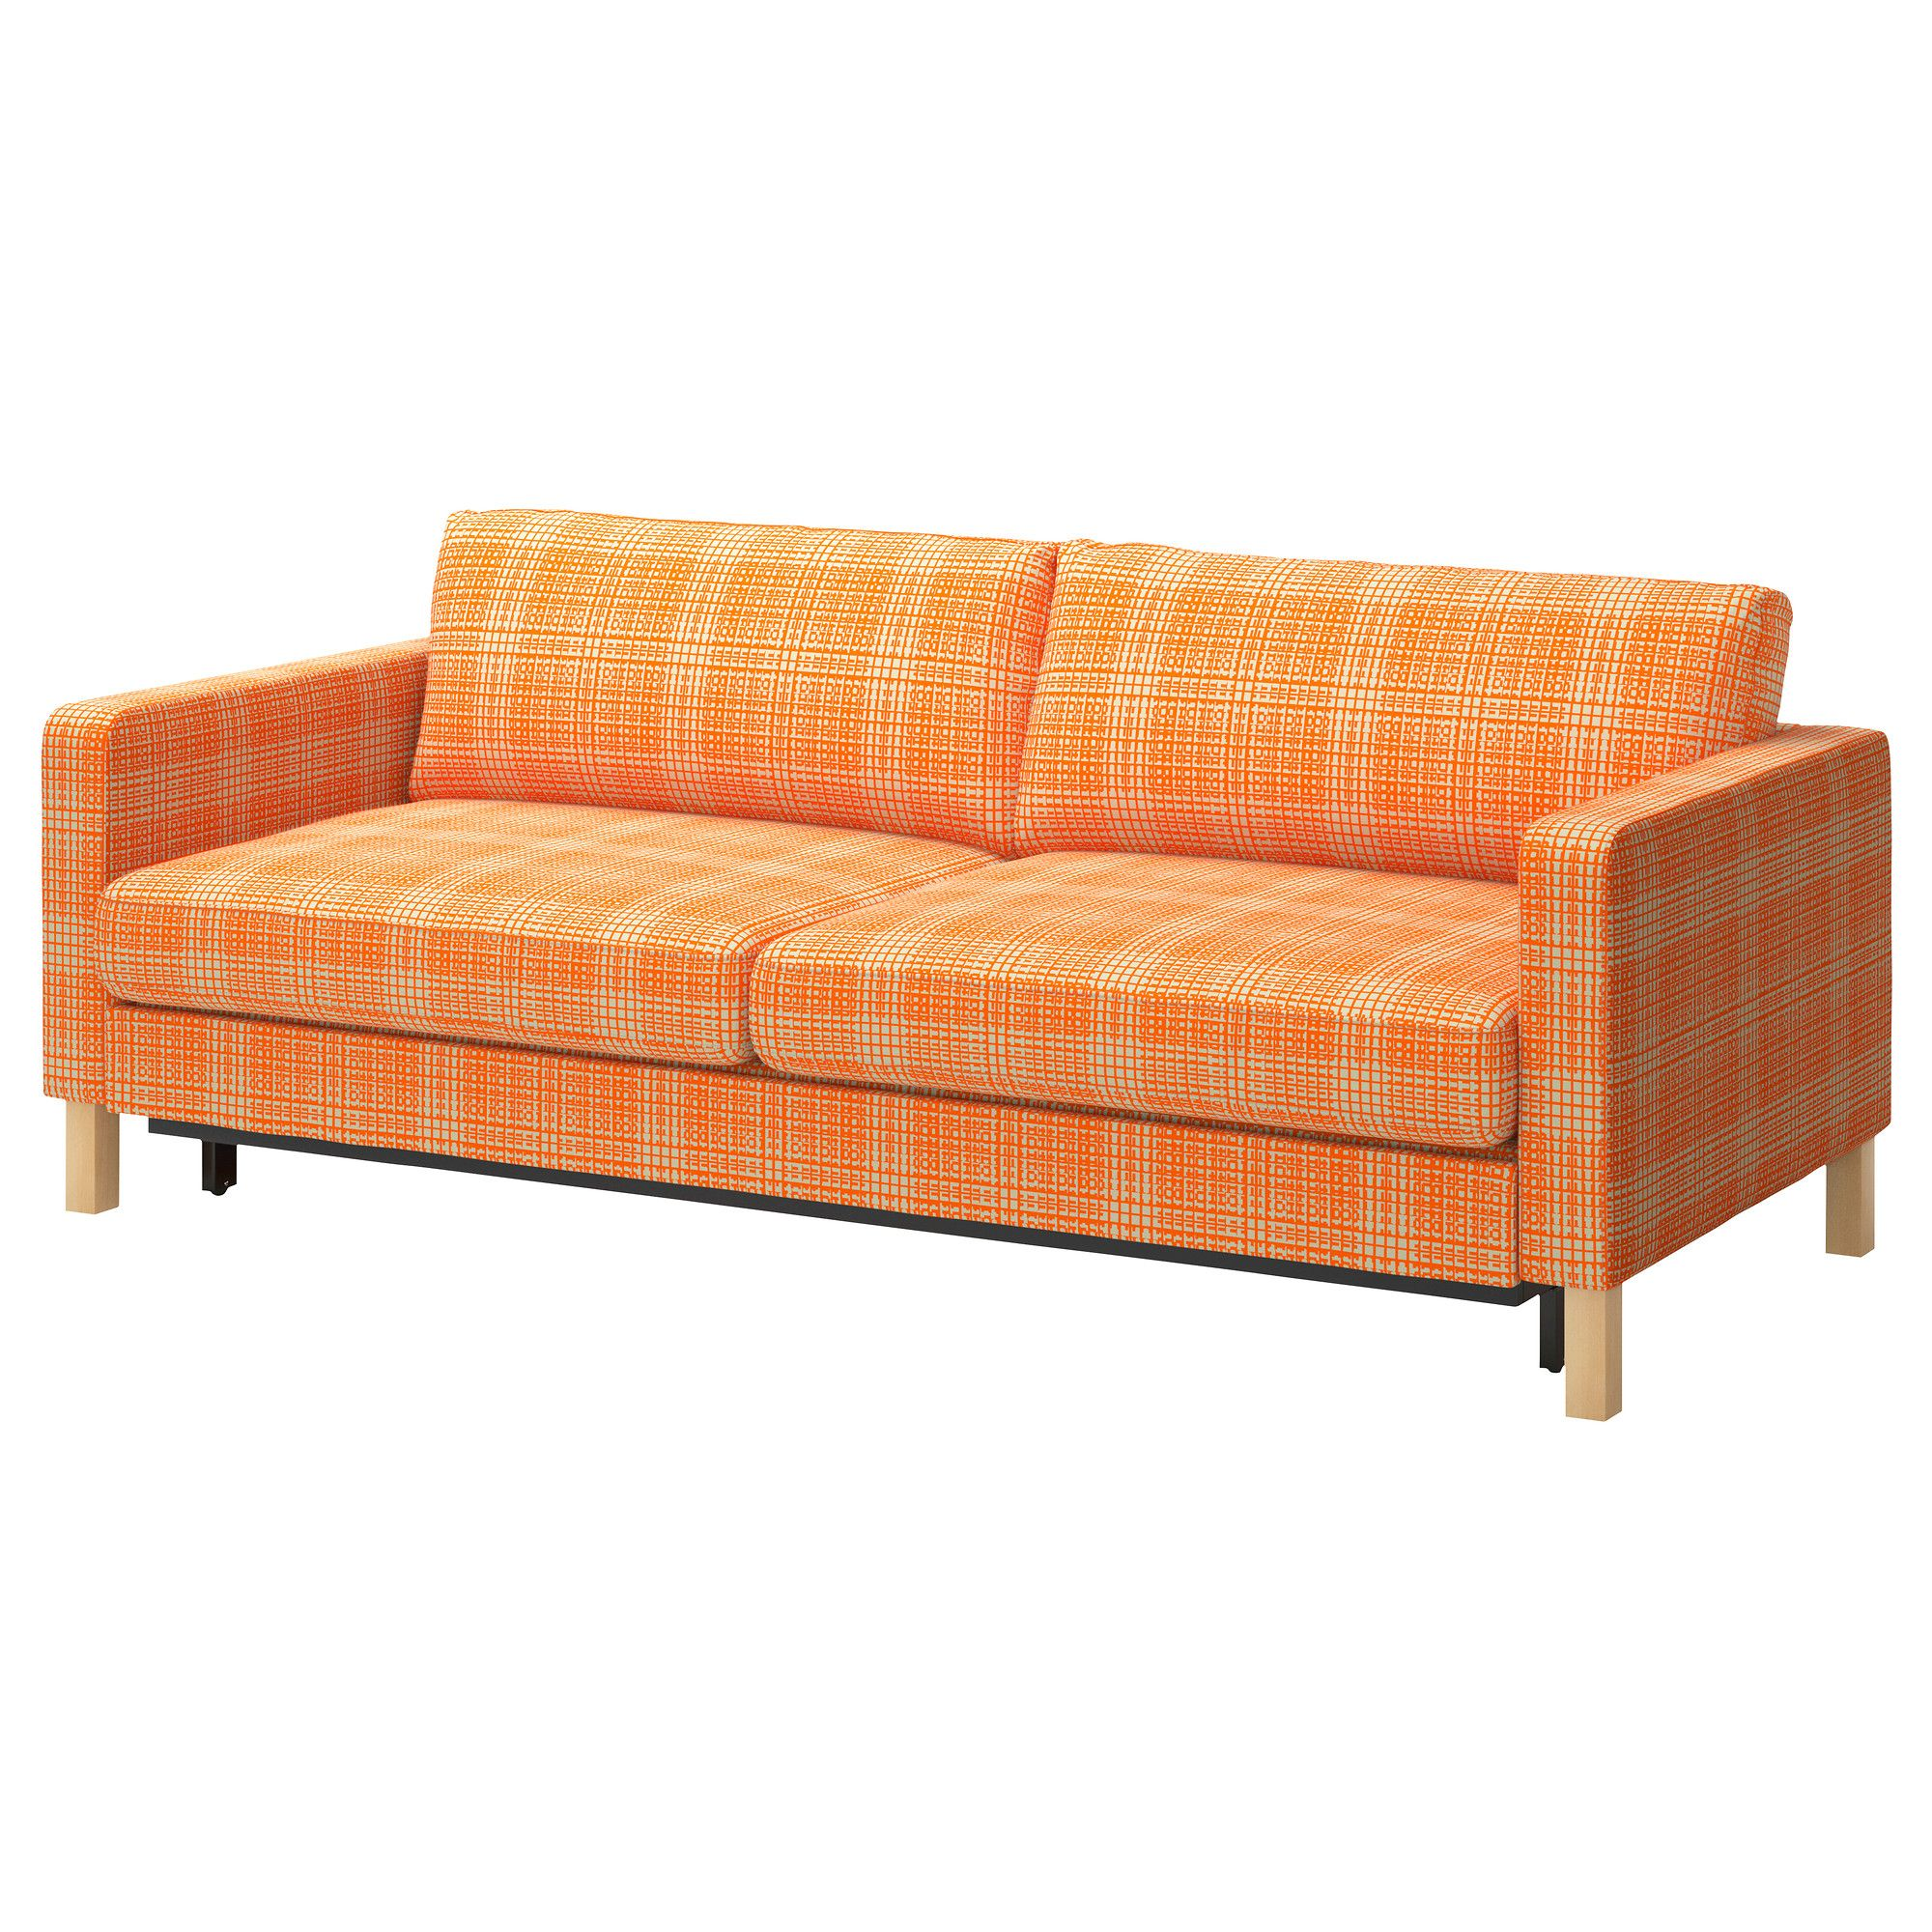 KARLSTAD Sofa Bed   Husie Orange   IKEA Fun Couch With Washable Slip Cover